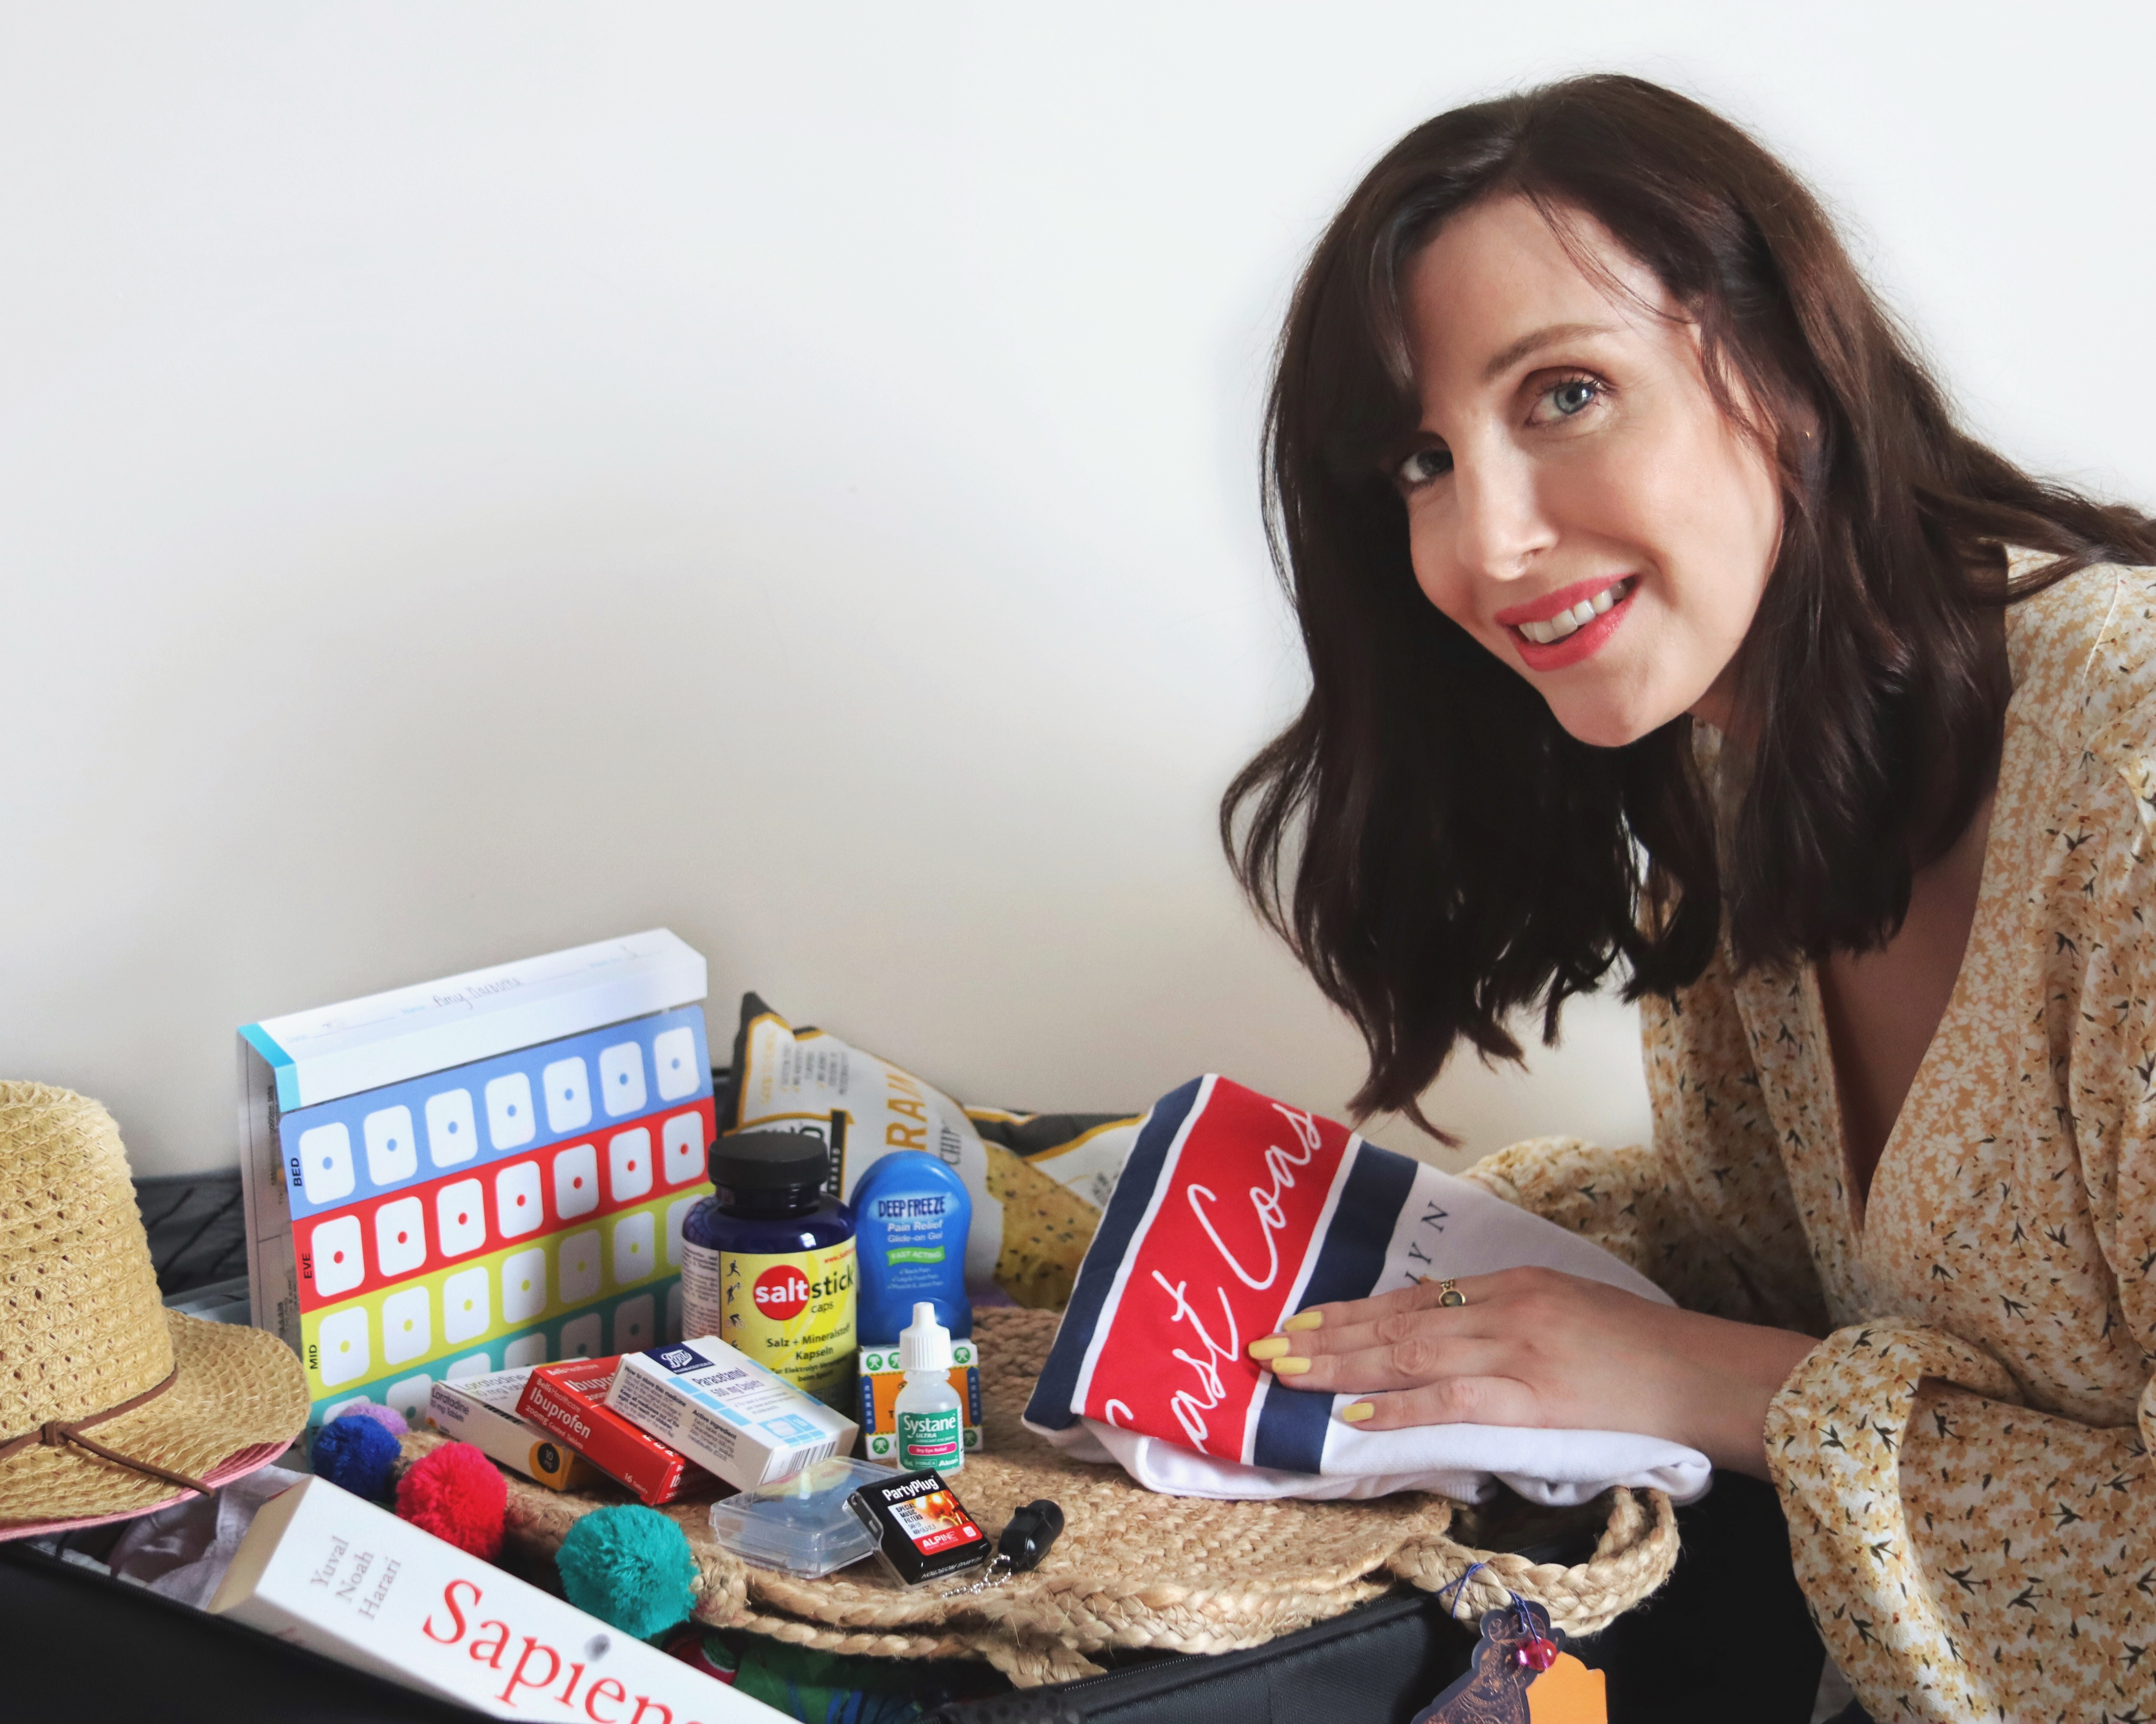 Holiday Care Package - Tips on what to take on holiday to be fully prepared when you're a Spoonie! Image of a woman with shoulder length dark hair packing a suitcase with medical goods.